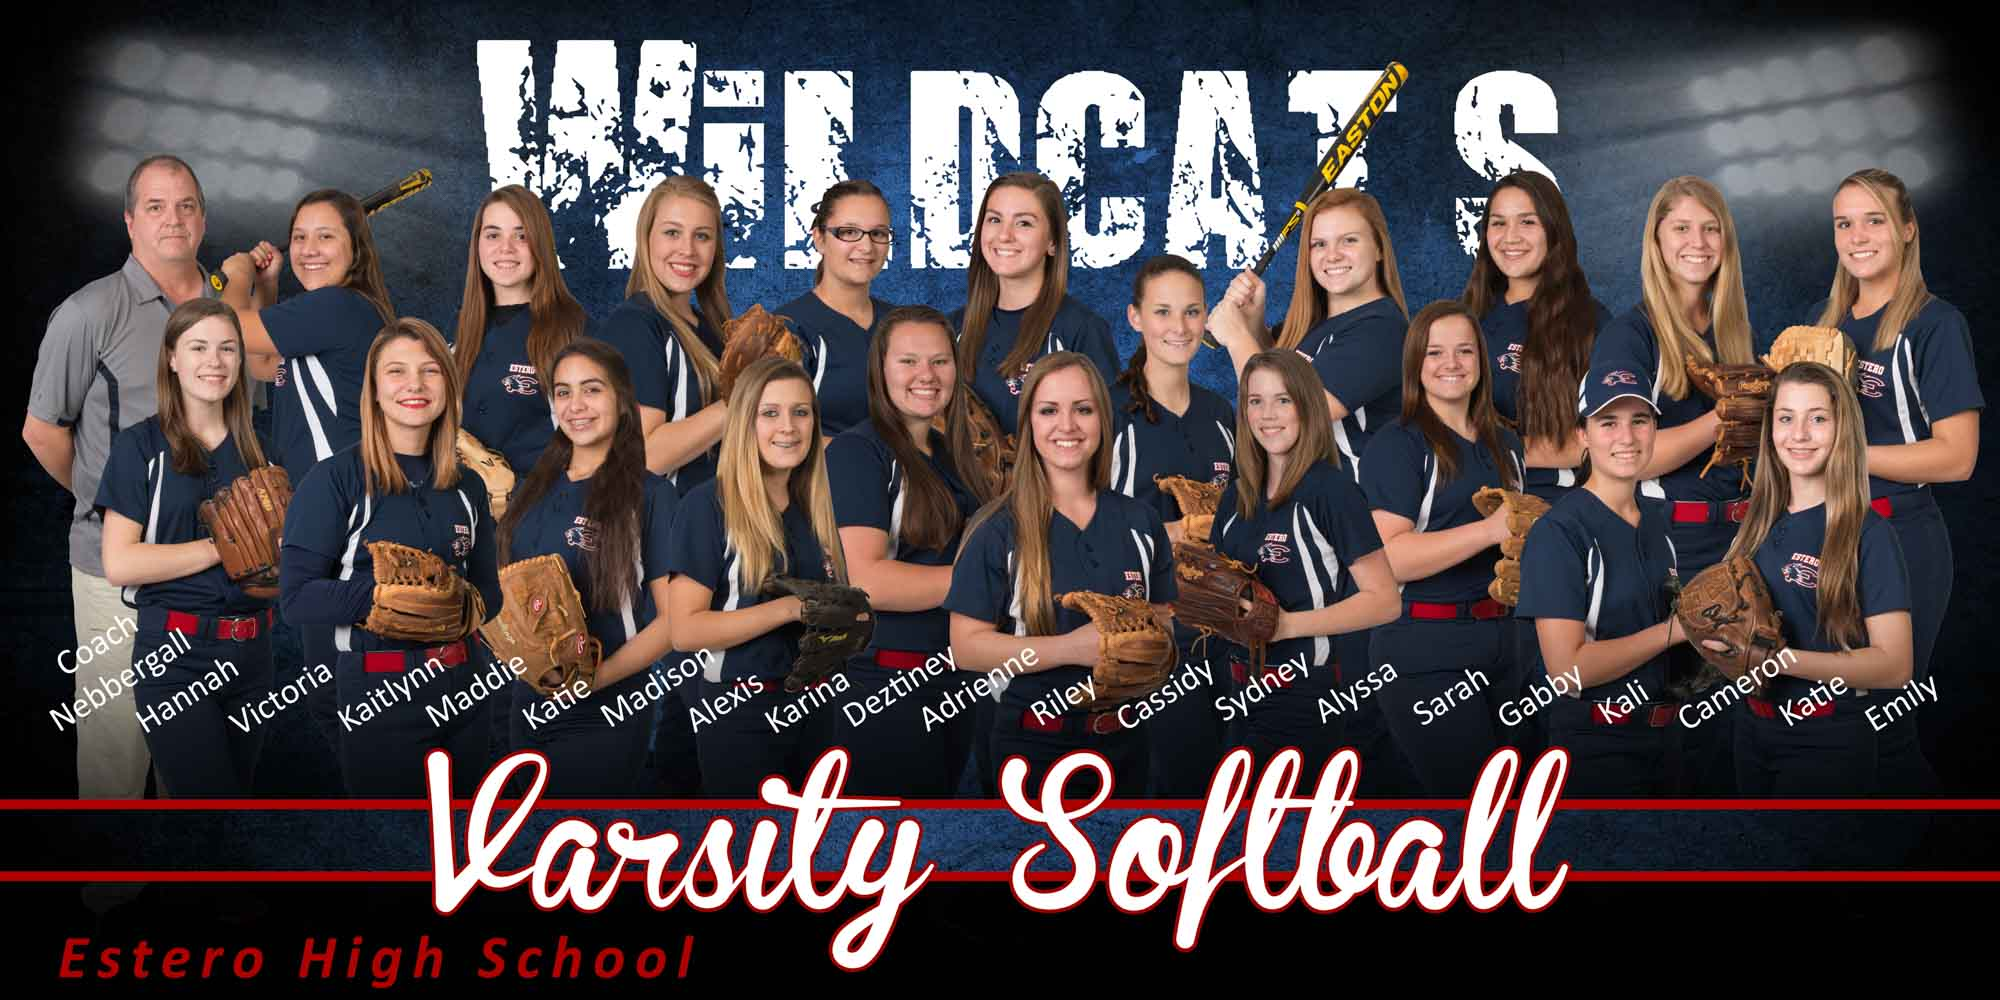 2015 Softball Team flattened